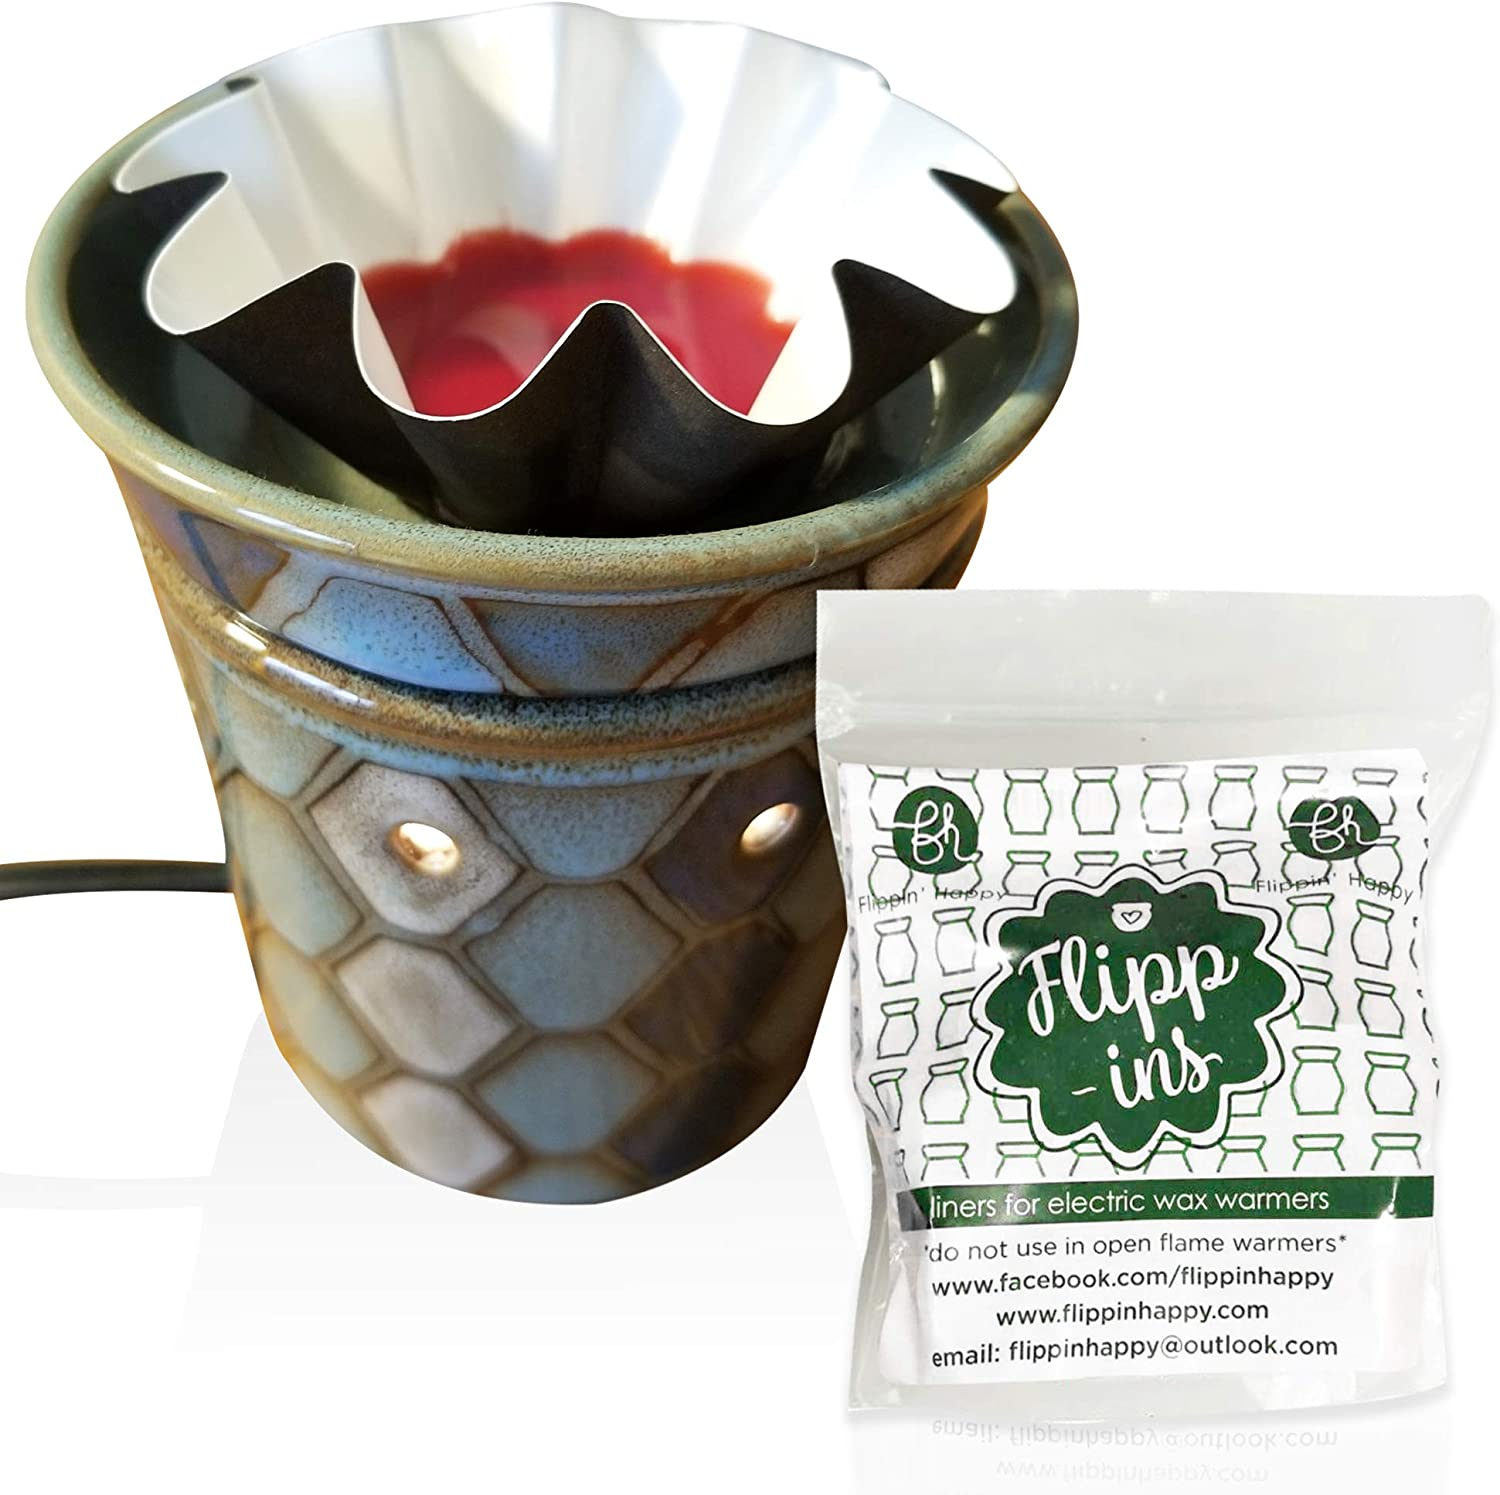 Flippin' Happy Wax Warmer Liners Large - Best New Accessory for Electric Wax Warmers & Wax Melts. Reusable Leakproof -Change Your Scented Wax Cubes Quick and Easy. Wax Melters Stay Looking Like New